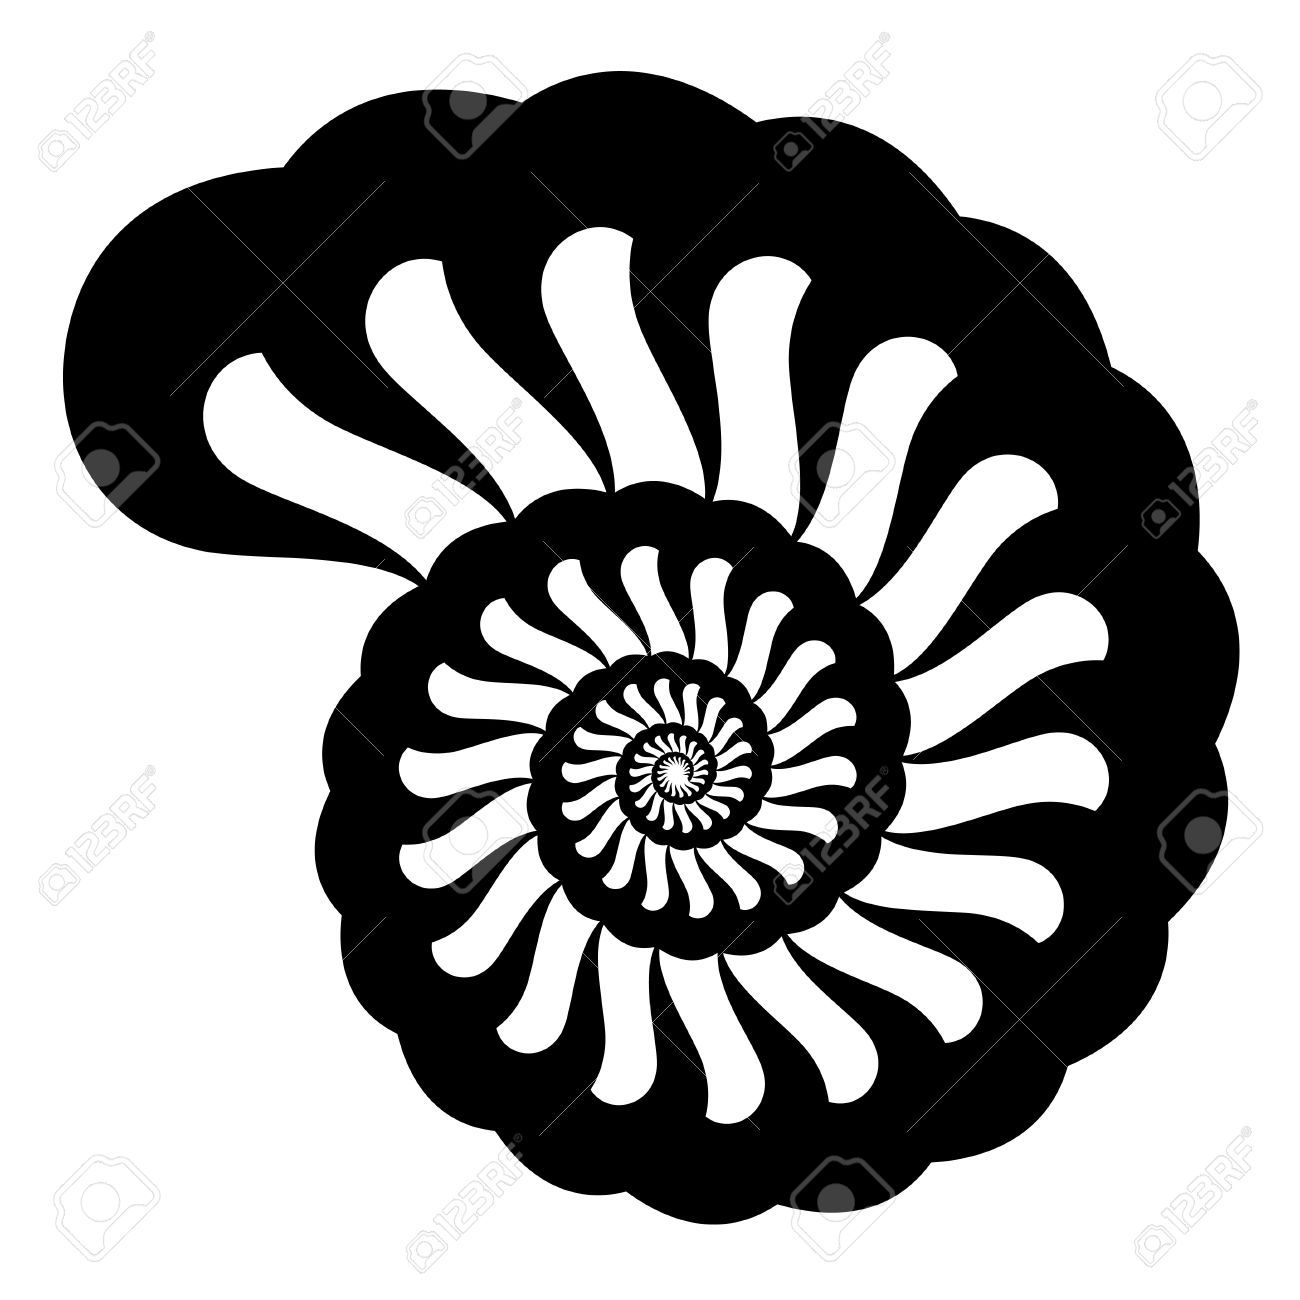 1300x1300 Shell Silhouette Royalty Free Cliparts, Vectors, And Stock